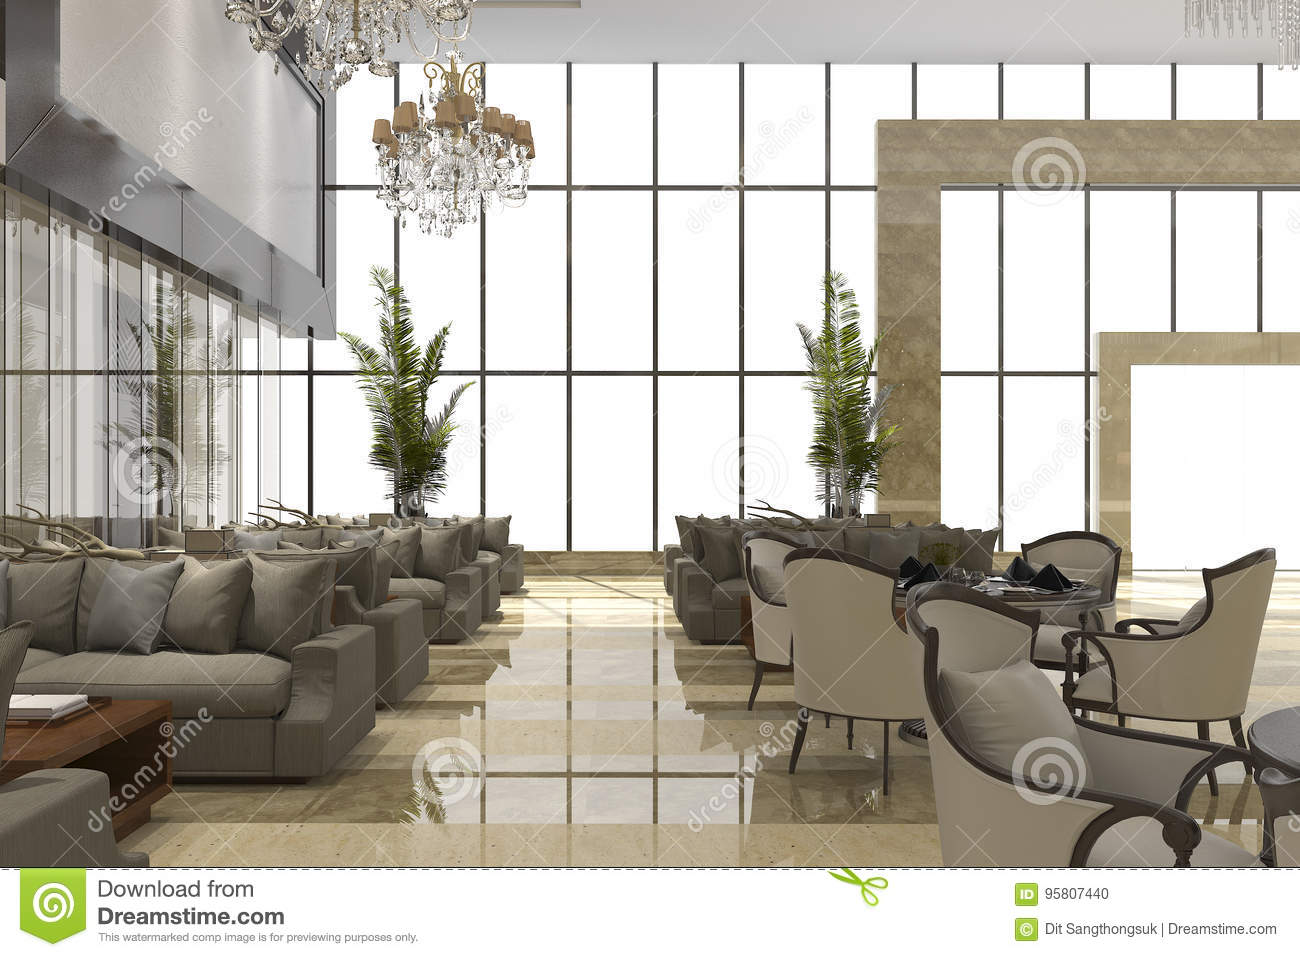 3d Rendering Luxury Hotel Reception And Lounge Restaurant Stock Illustration Illustration Of Contemporary Furniture 95807440